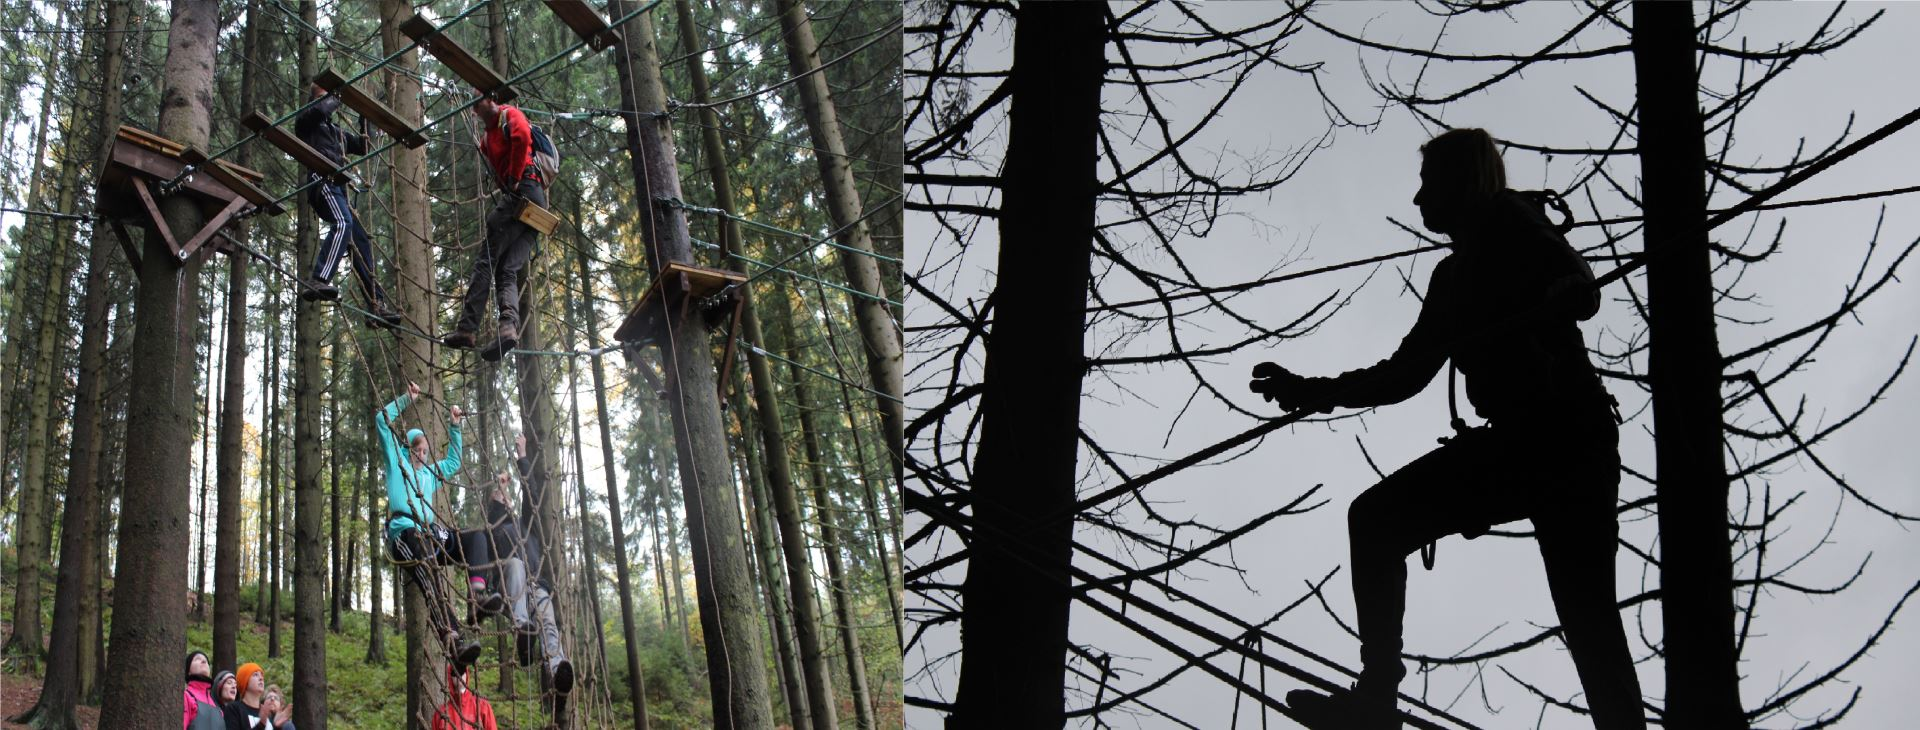 Touwbanenparcours / high rope parcours